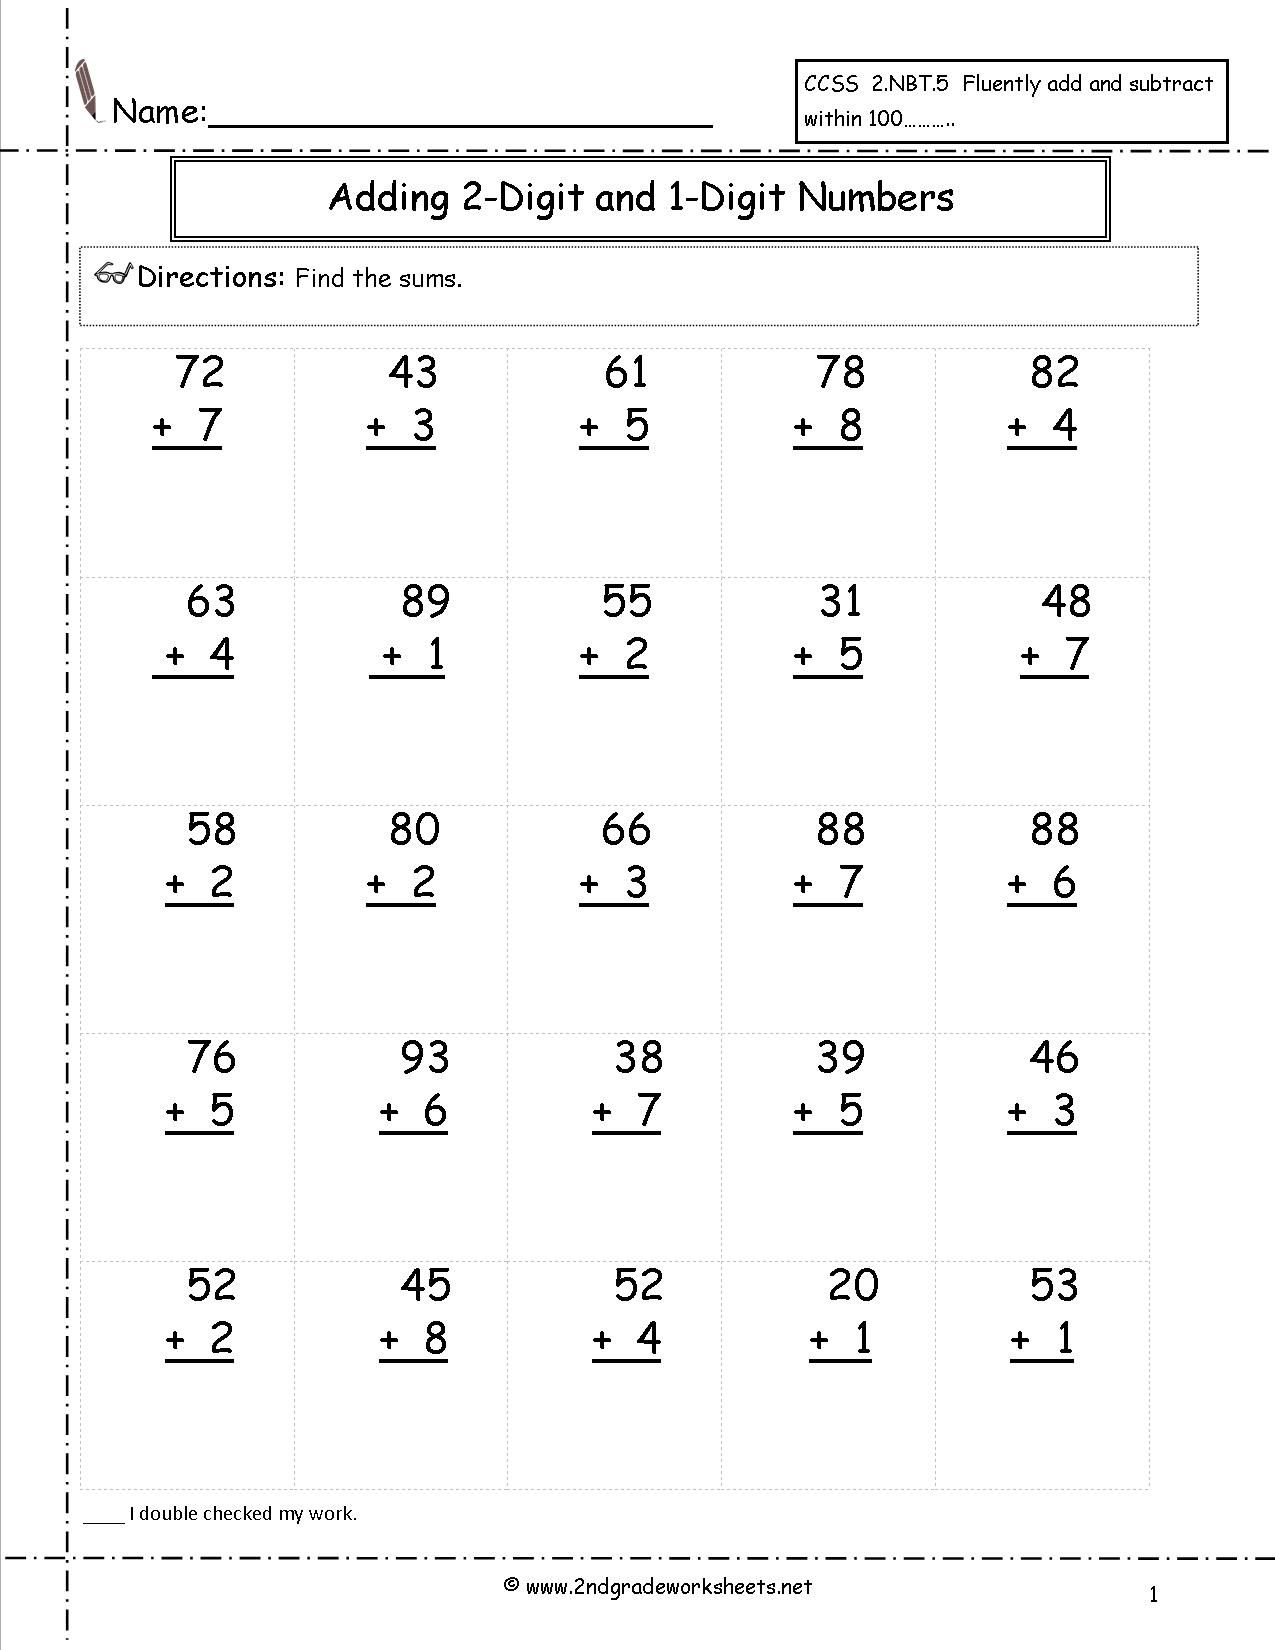 Adding Two Digit And One Digit Numbers | Satta | Pinterest - Free Printable Two Digit Addition Worksheets